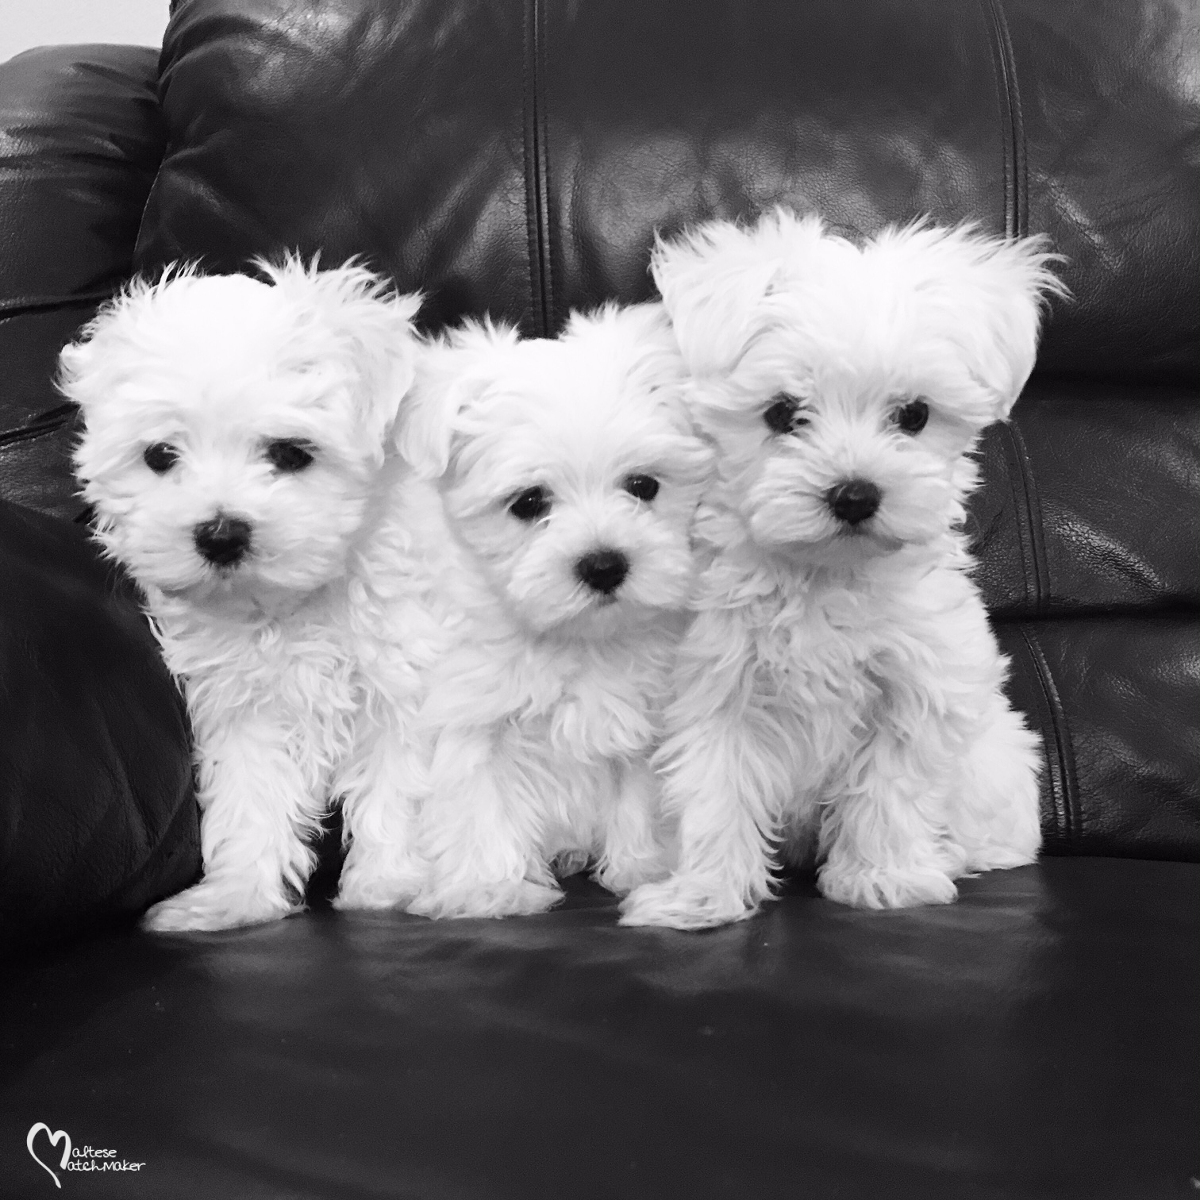 Many Maltese Puppies For Sale - Furry Babies